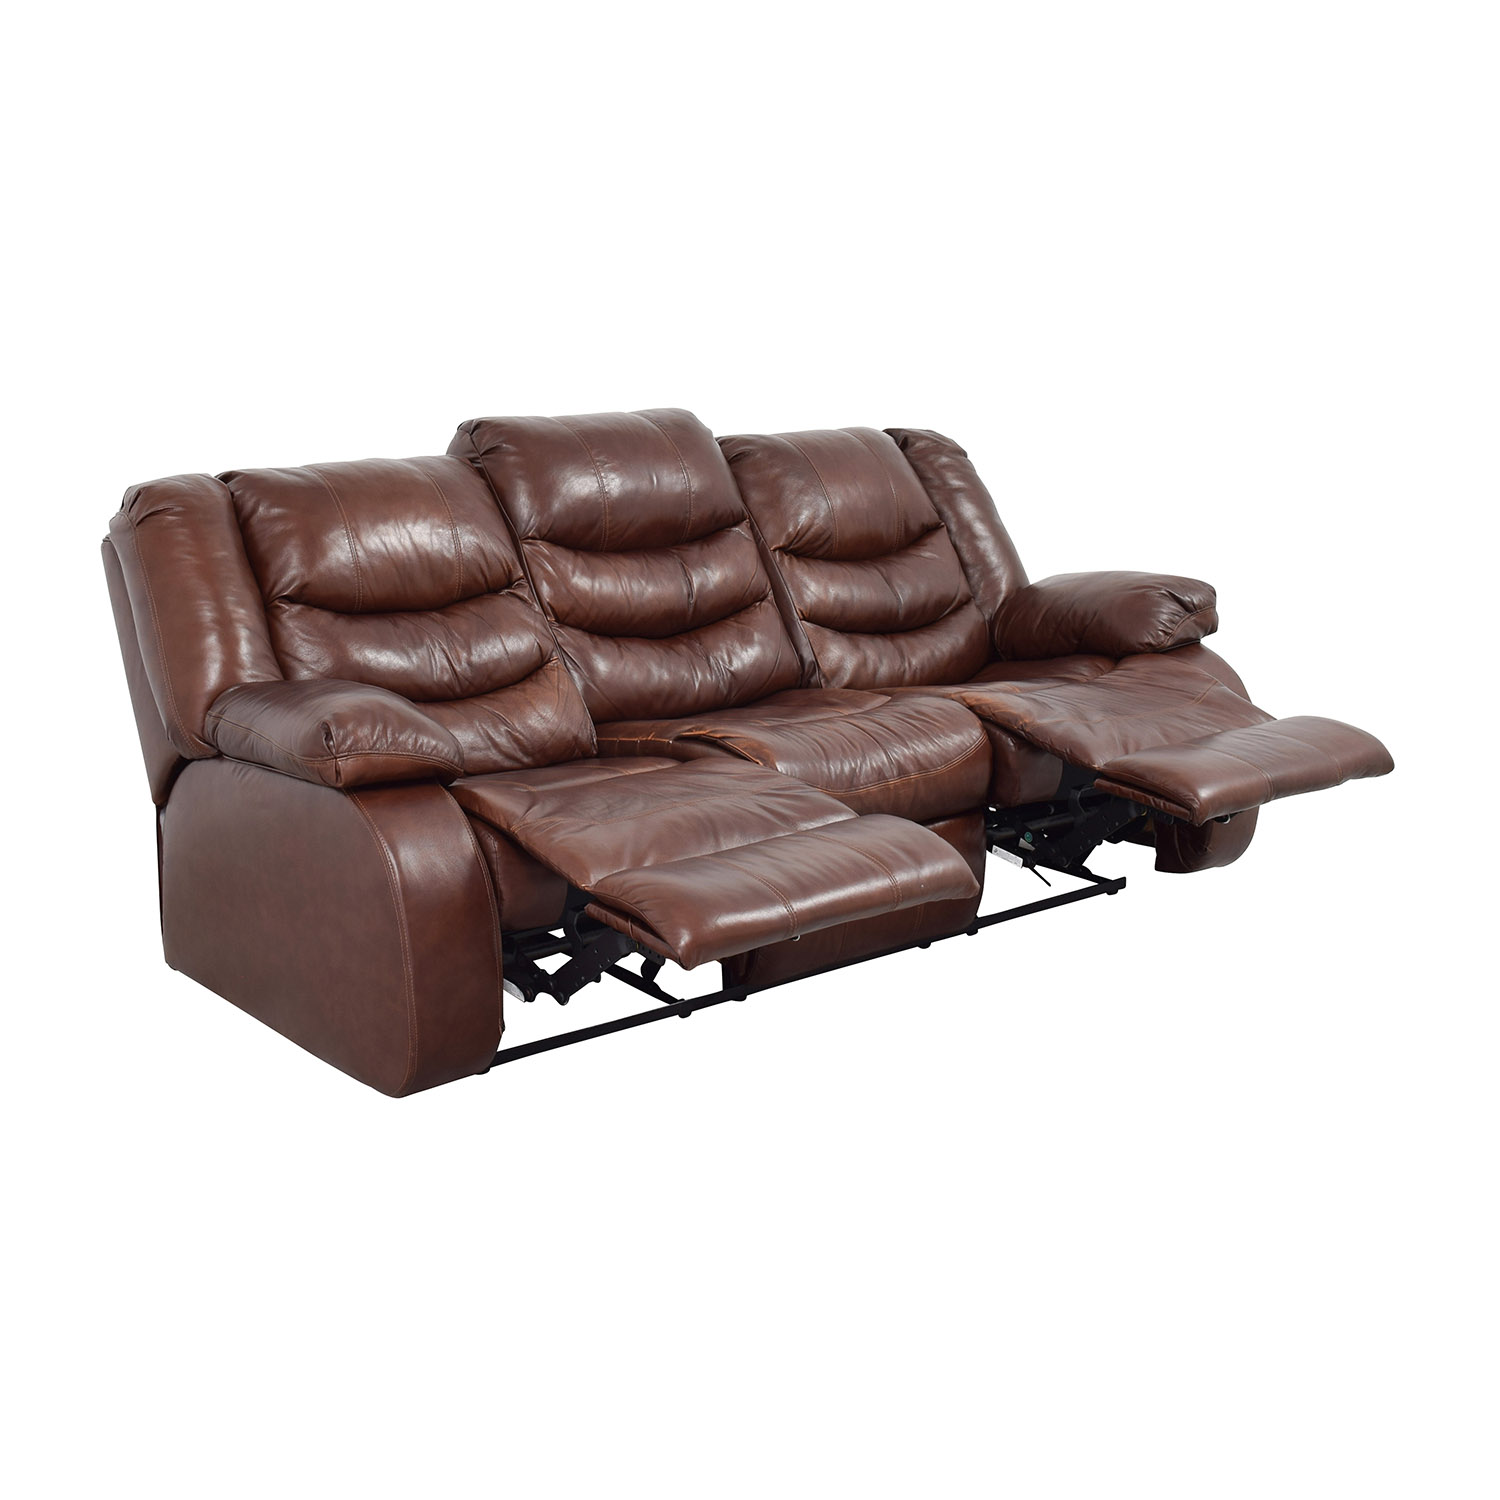 recliner furniture sofa power to room and applied idea living for loveseat ashley your house remarkable leather